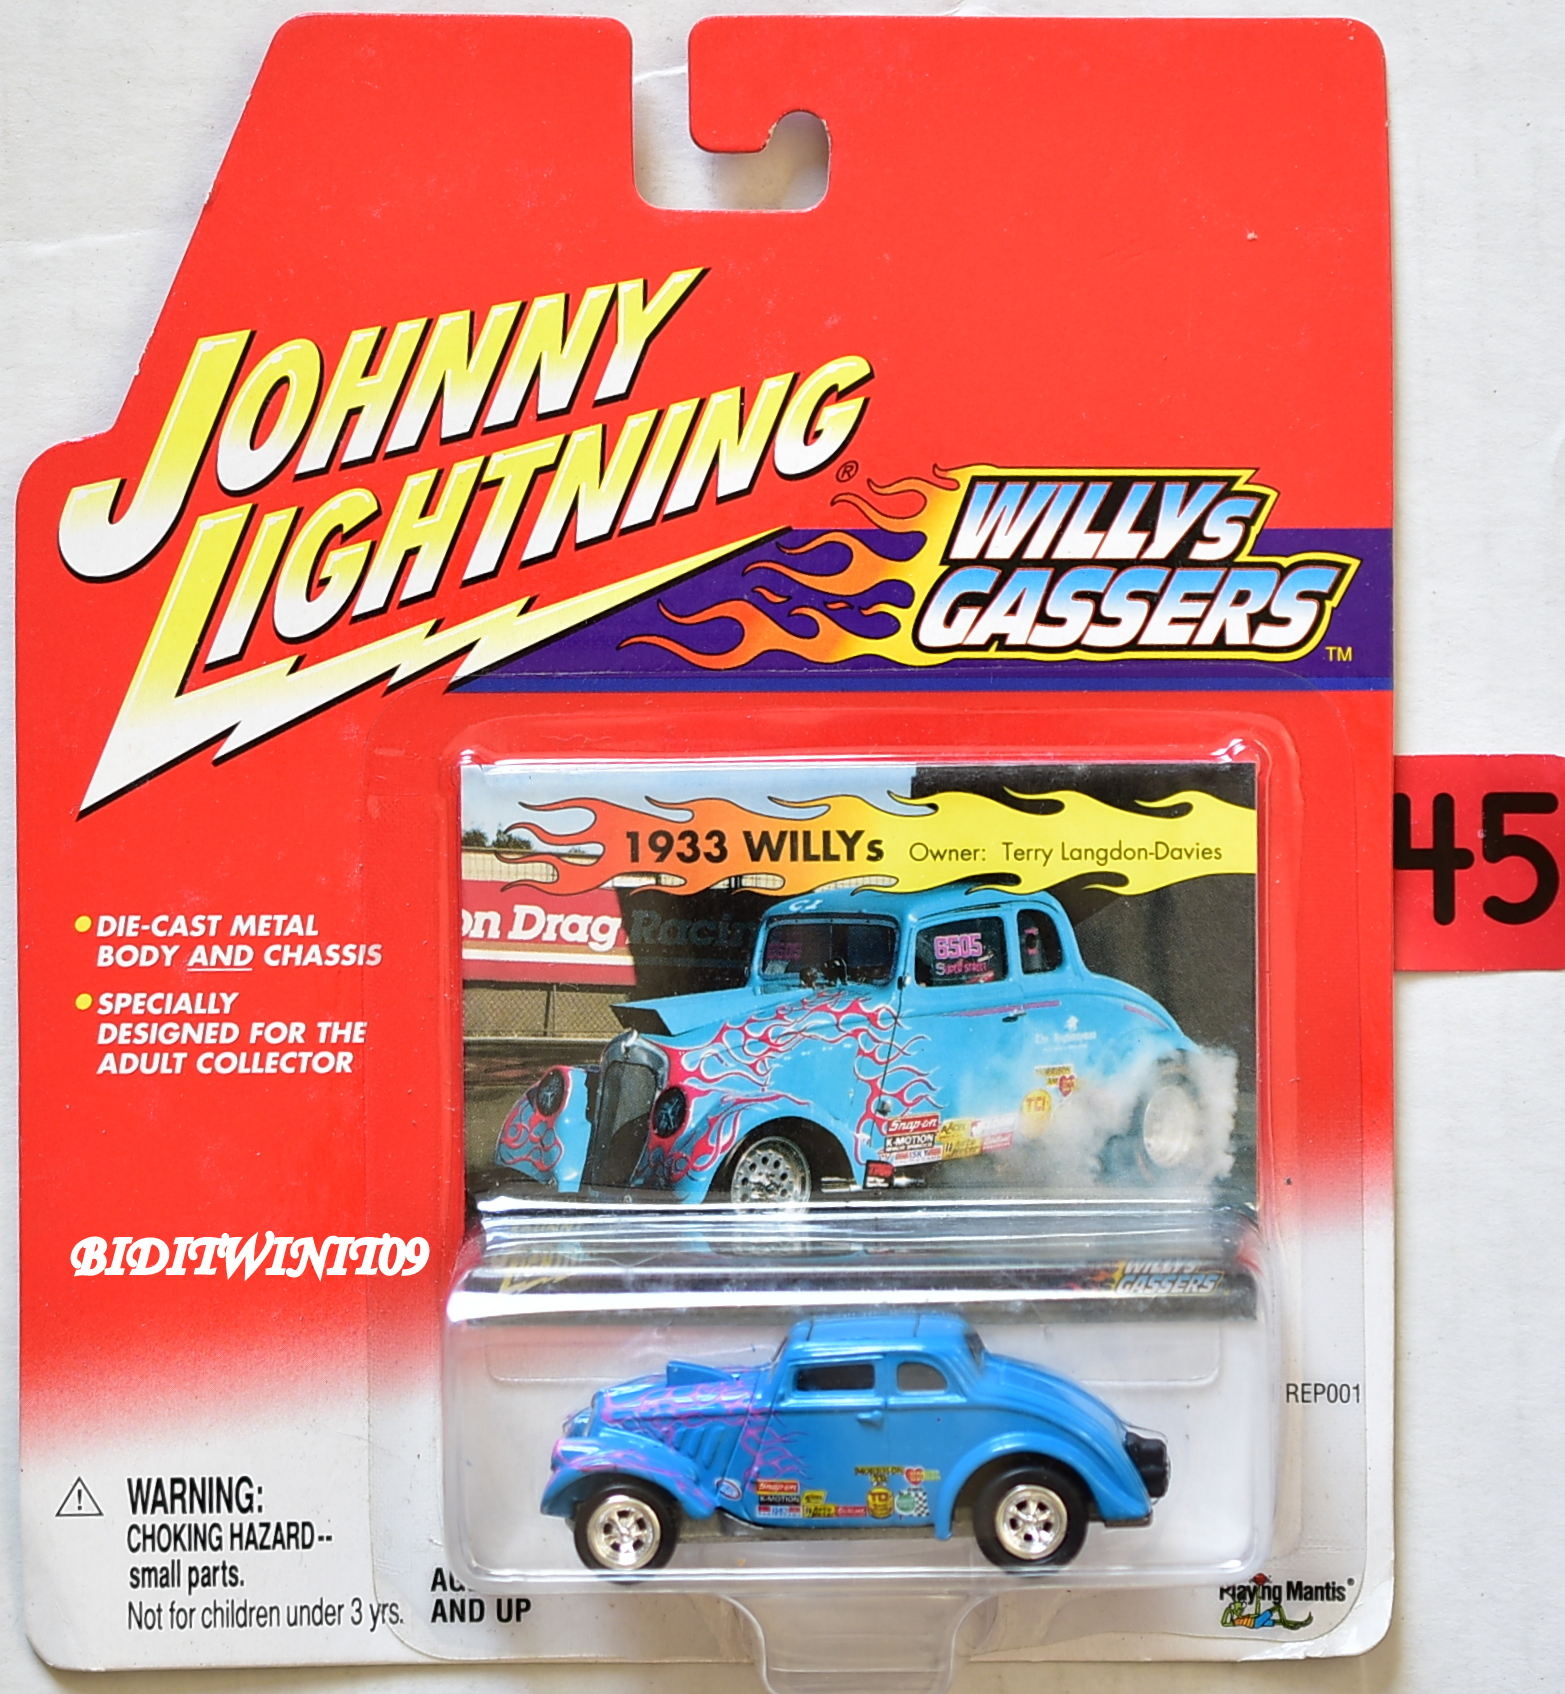 JOHNNY LIGHTNING WILLYS GASSERS 1933 WILLYS